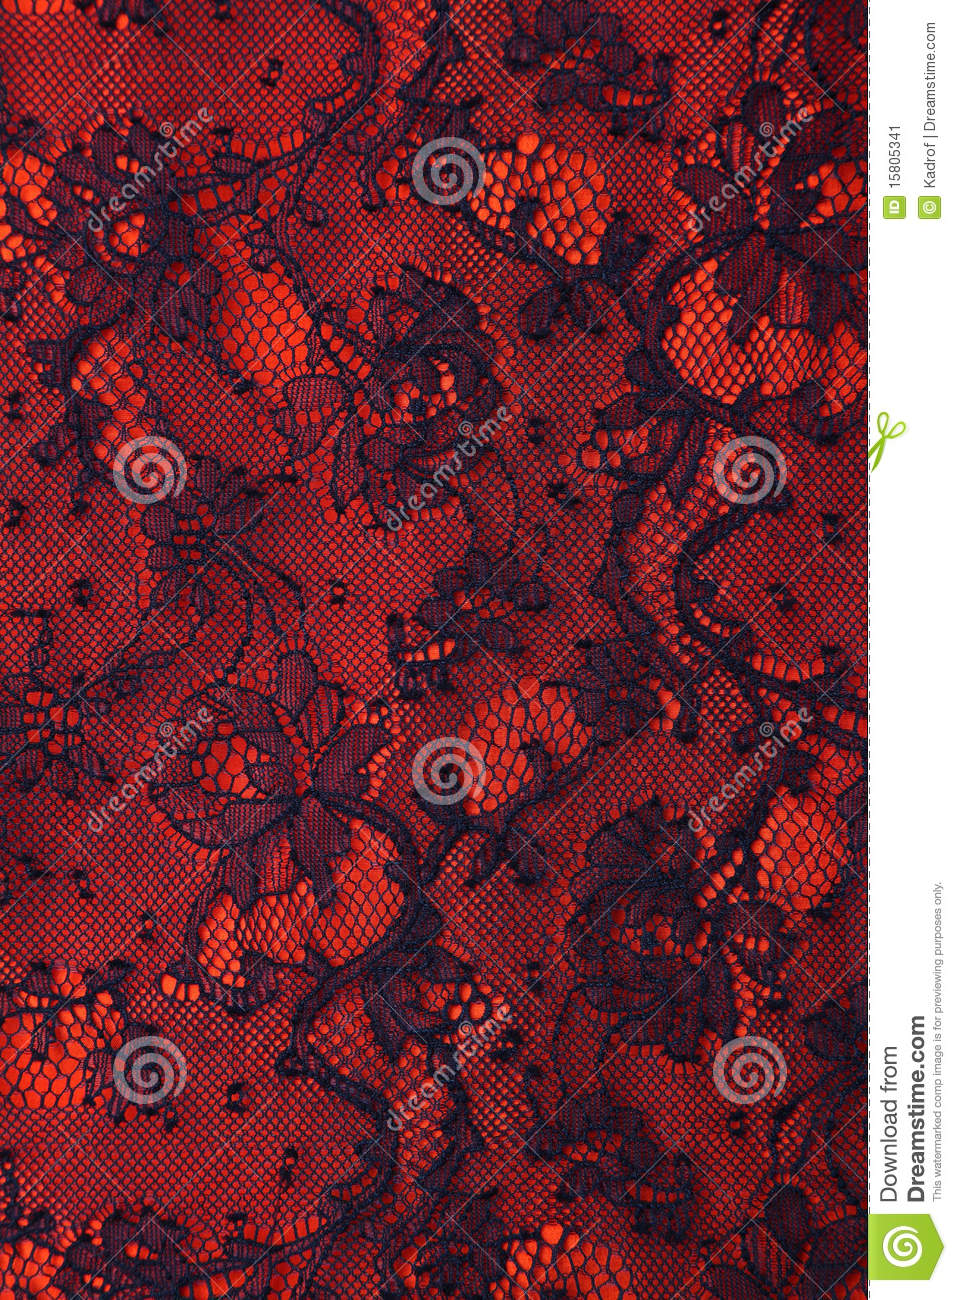 Stock Image Black And Red Floral Lace Texture Image